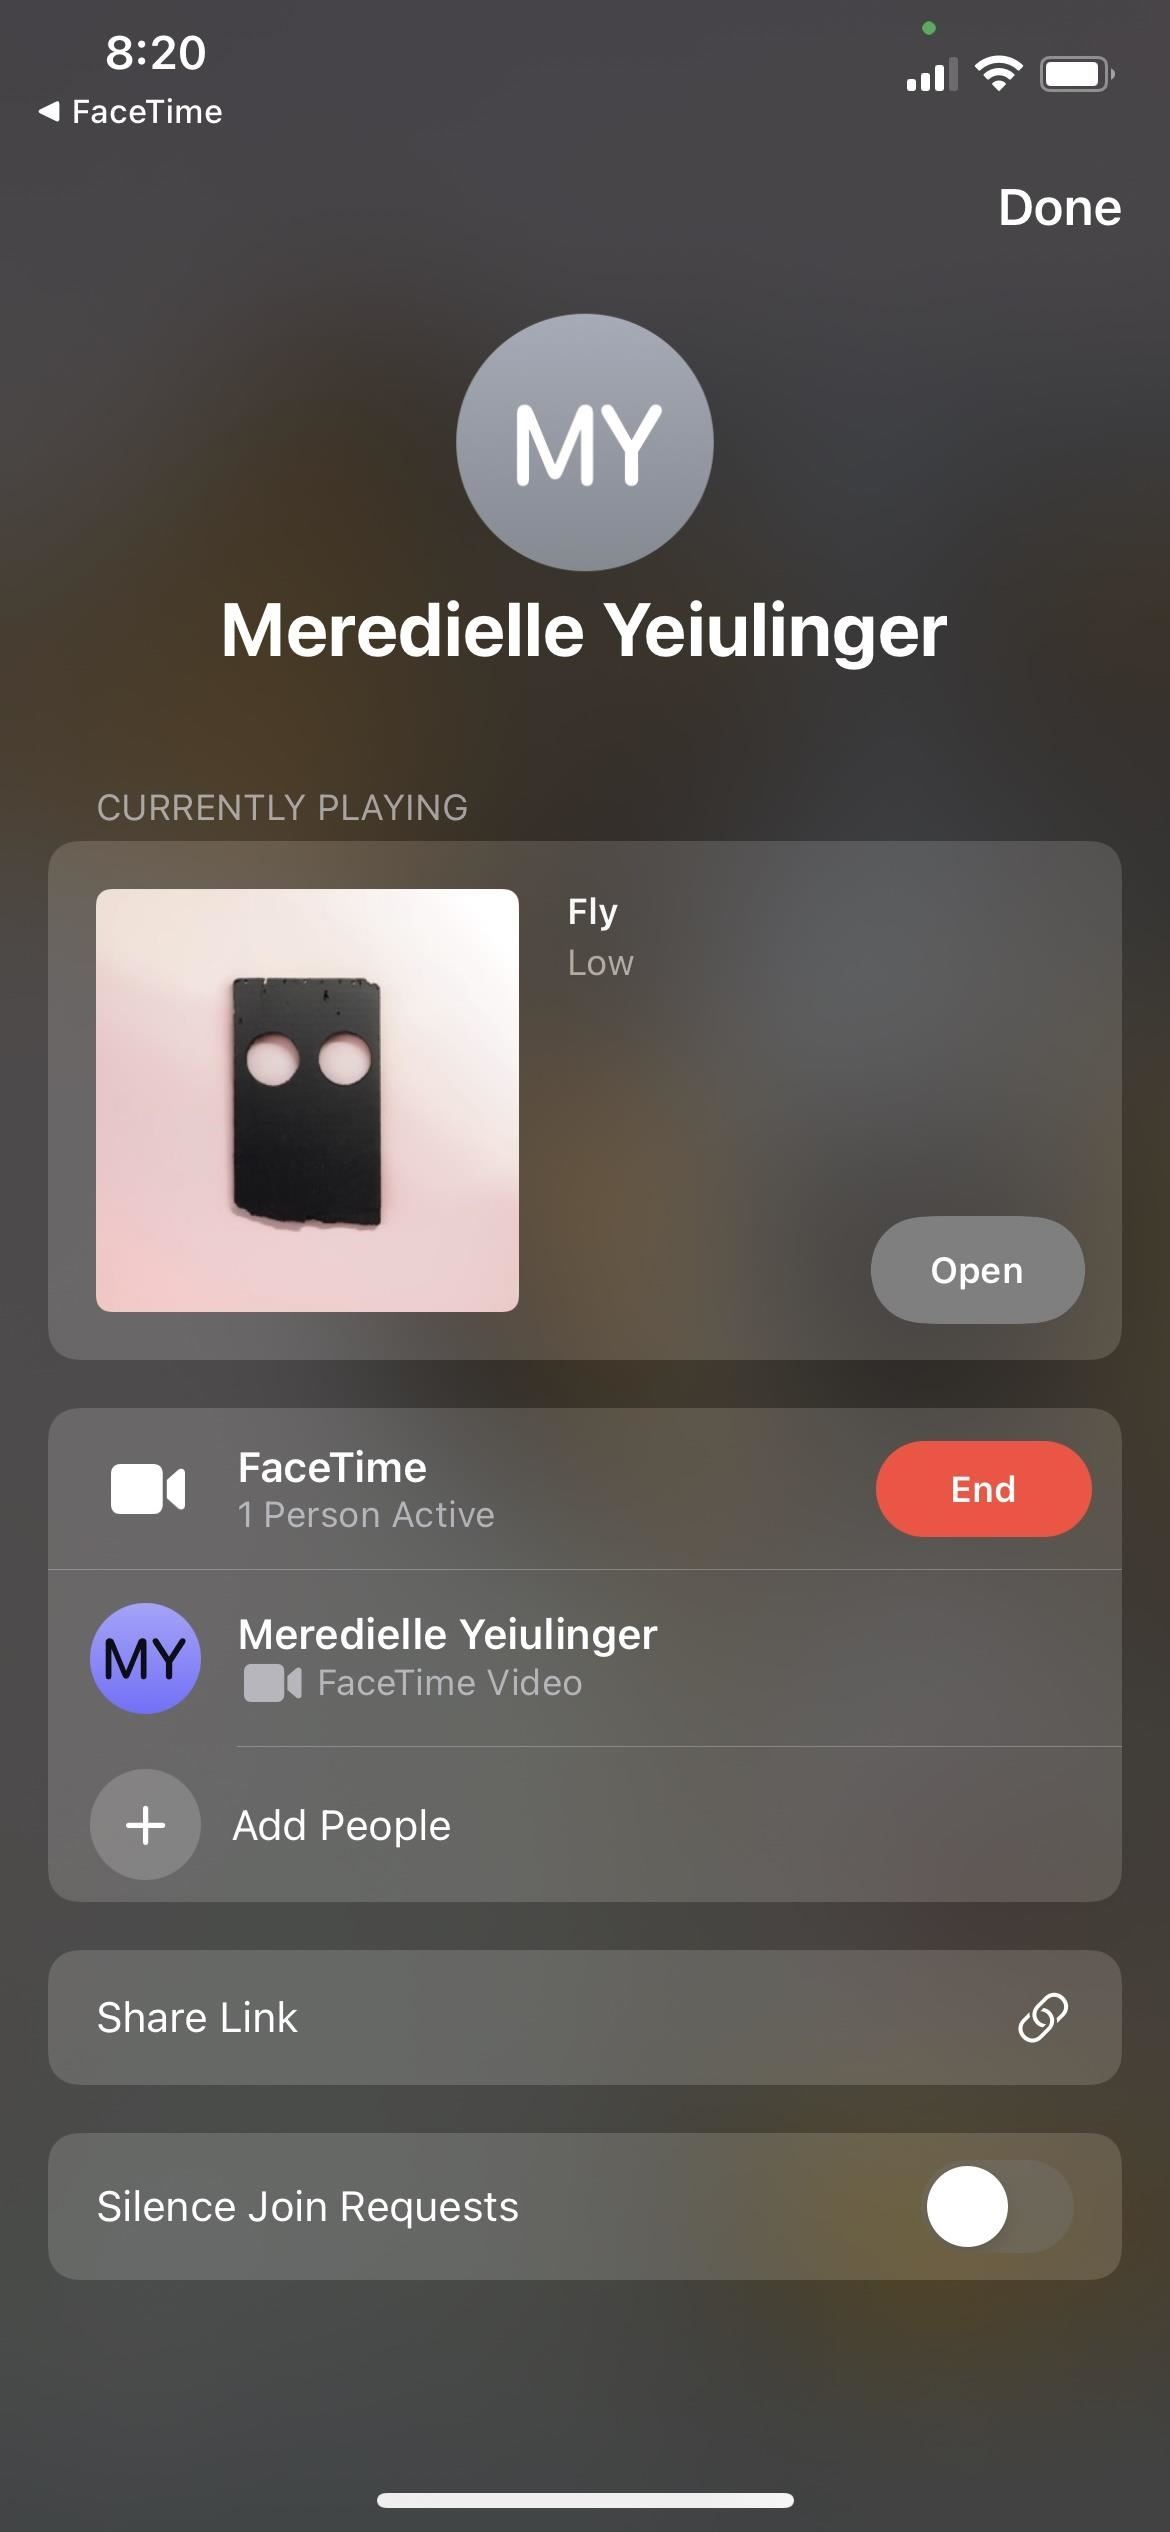 SharePlay: How to Screen Share in iOS 15 with FaceTime on Your iPhone